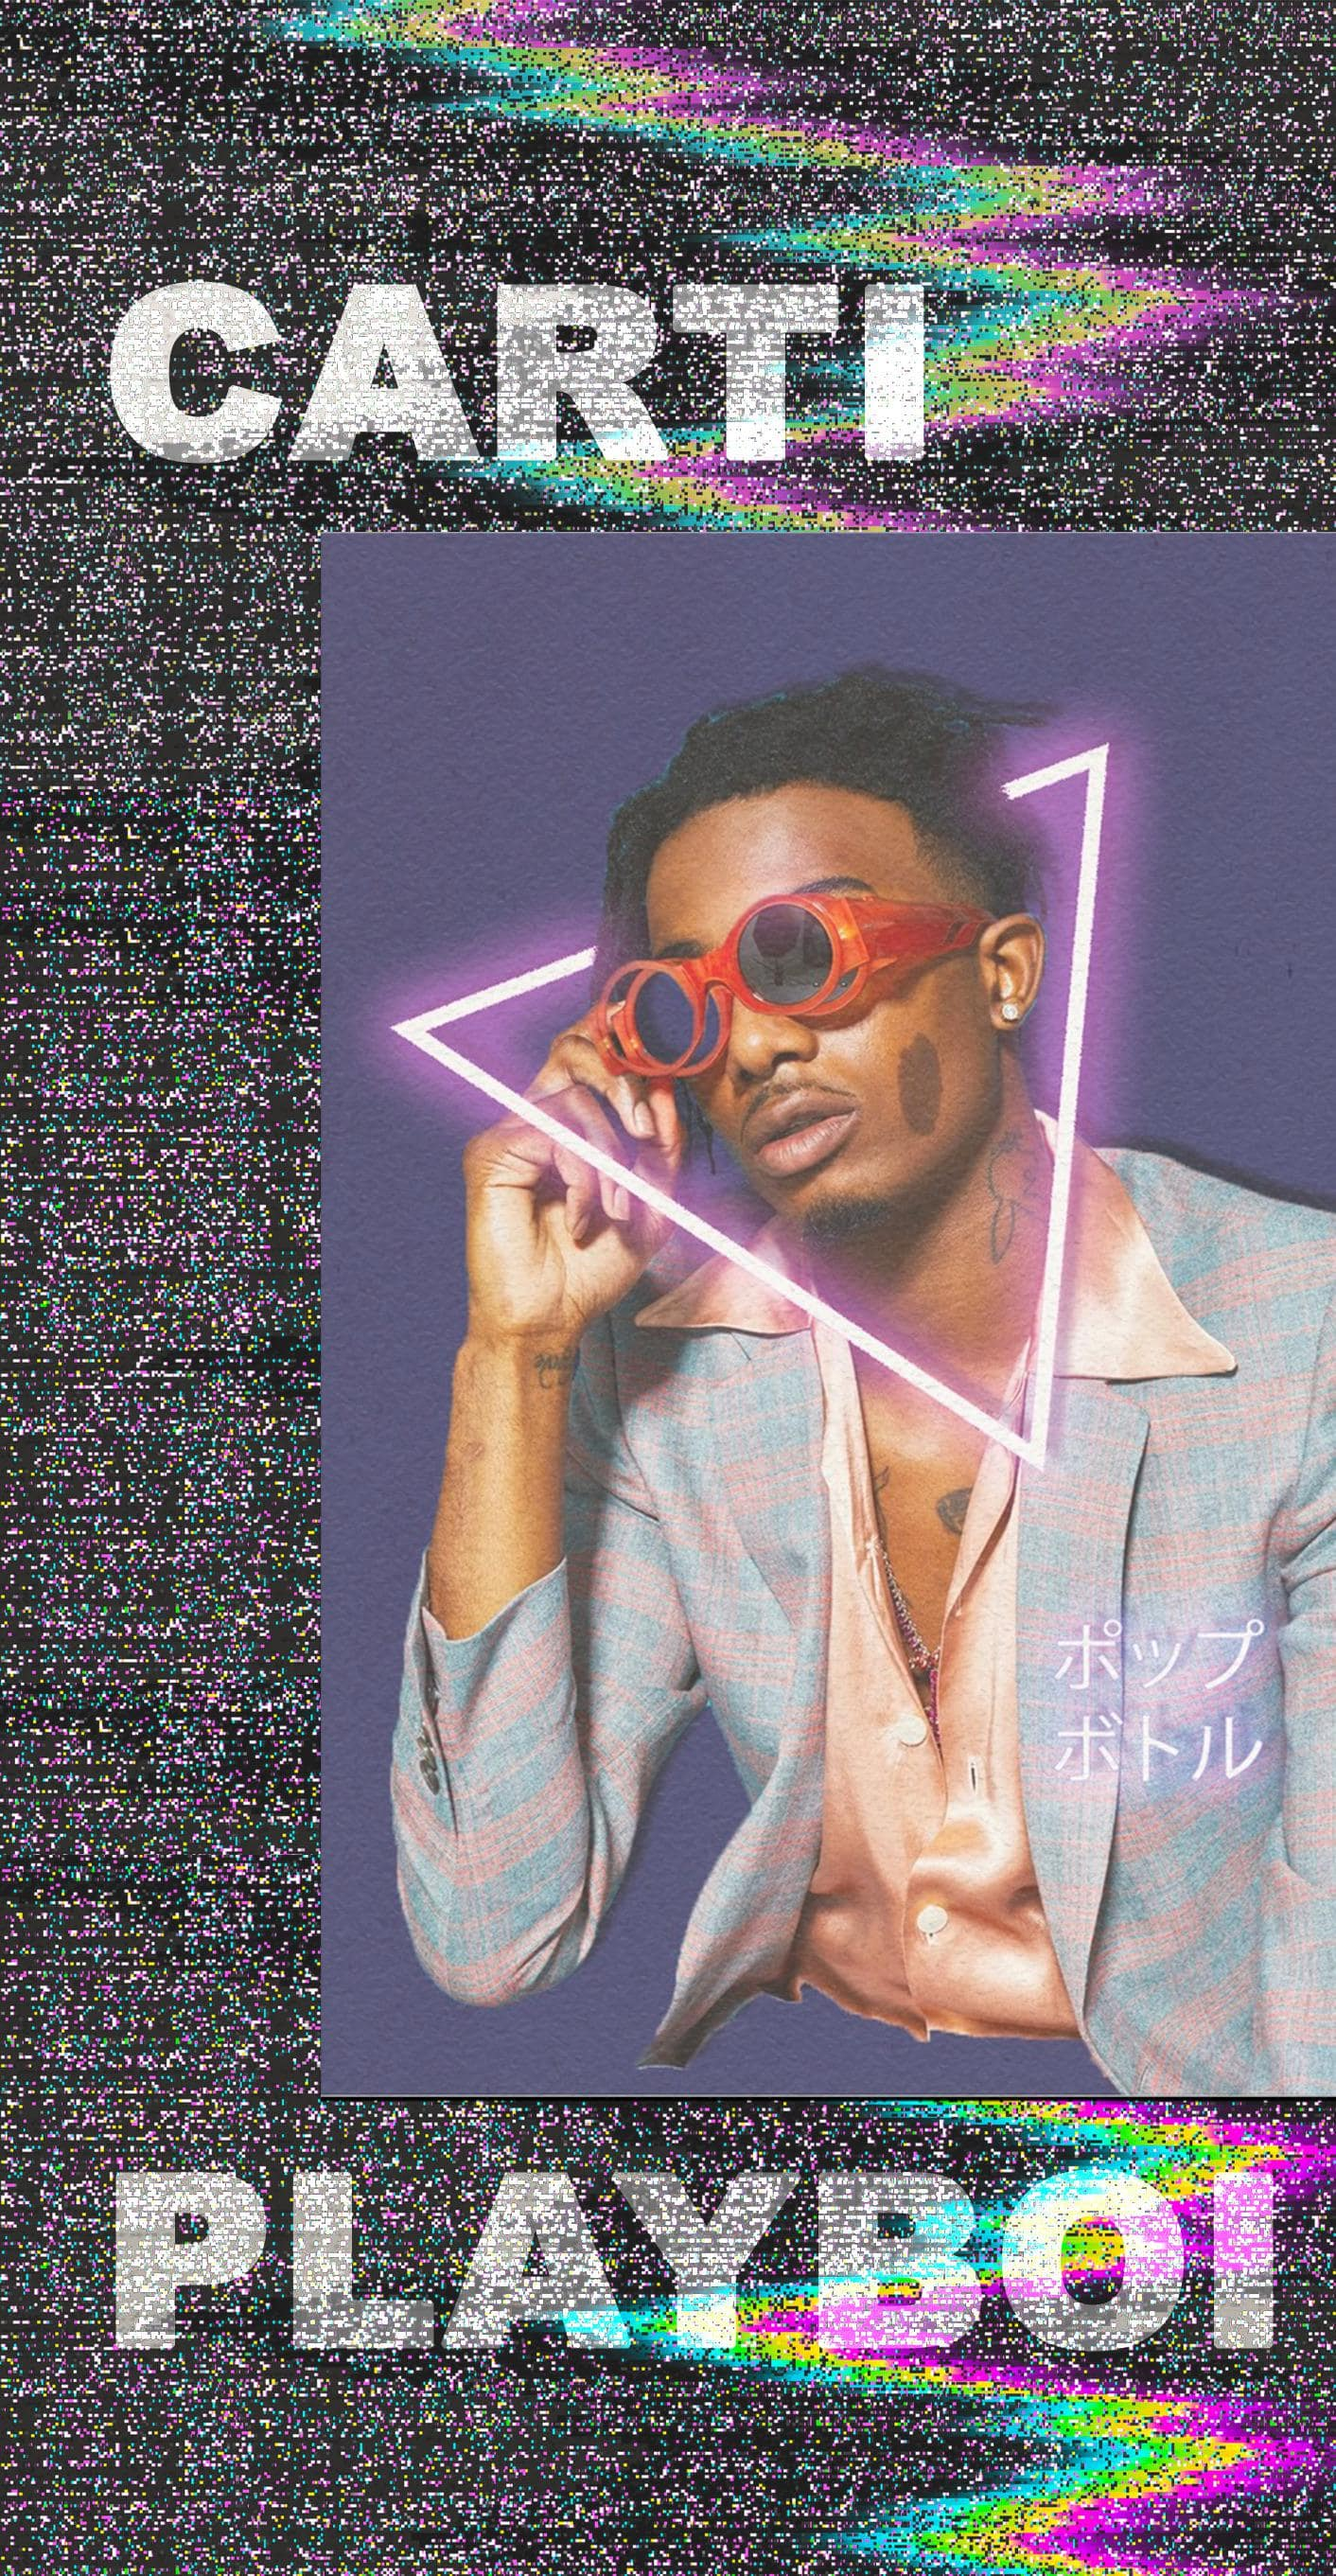 Carti Wallpaper Iphone